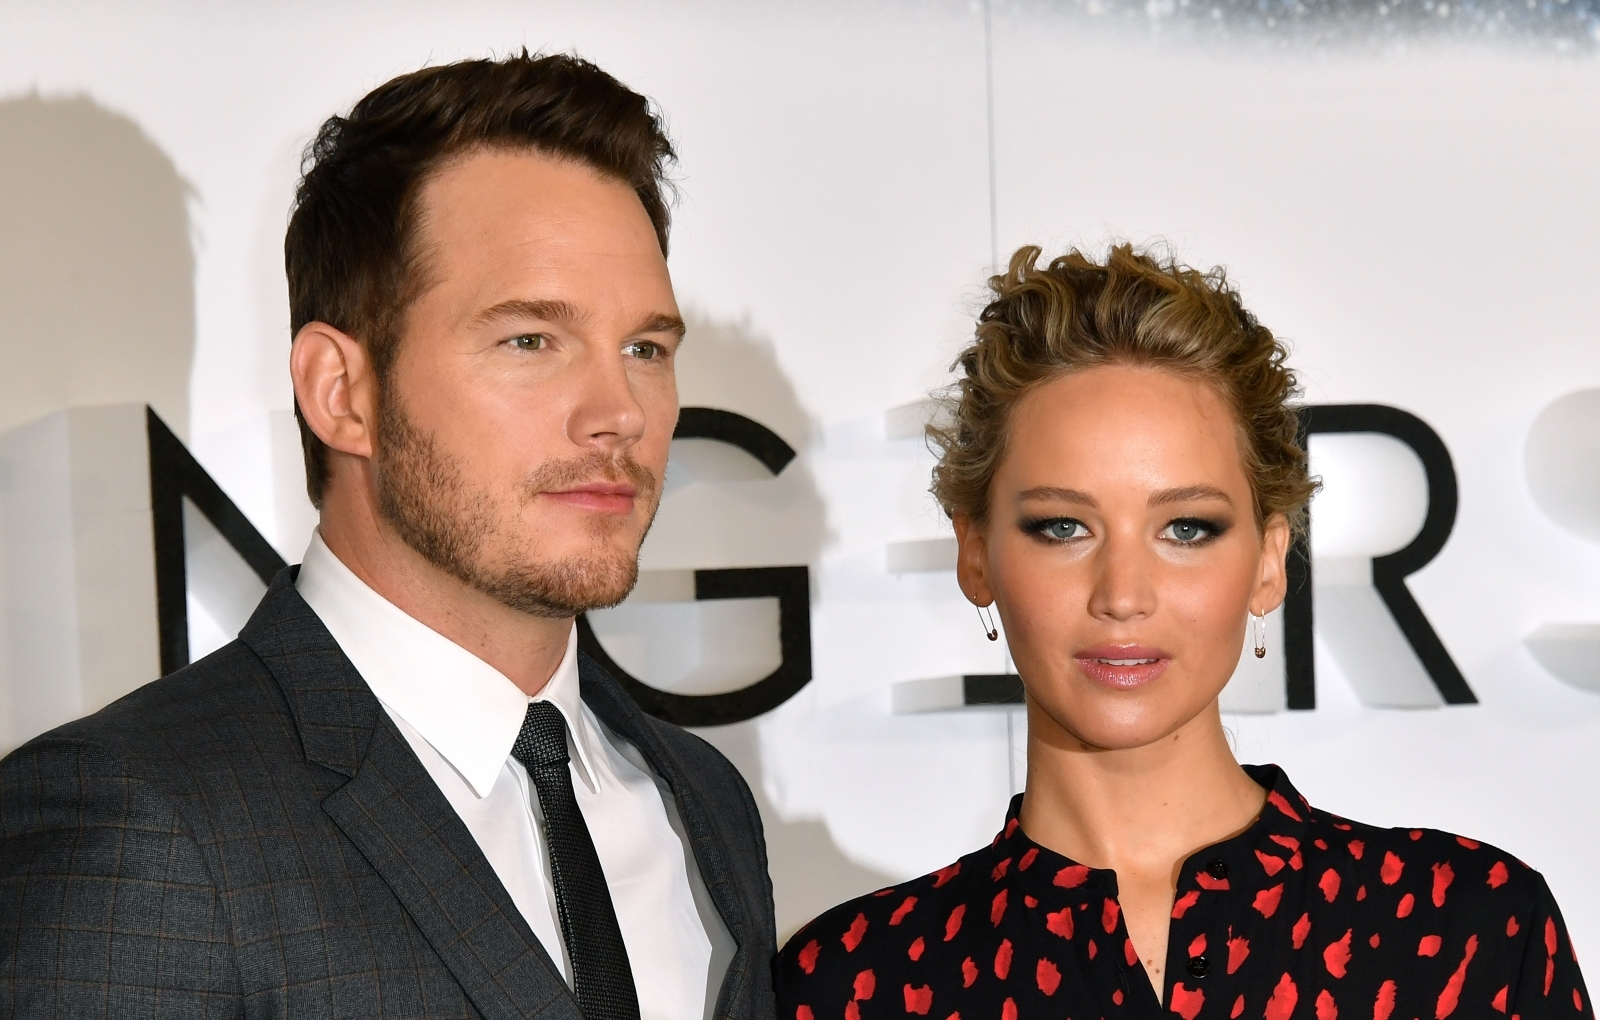 Chris Pratt Reveals 'Terror' In Marriage To Anna Faris In Tell-All